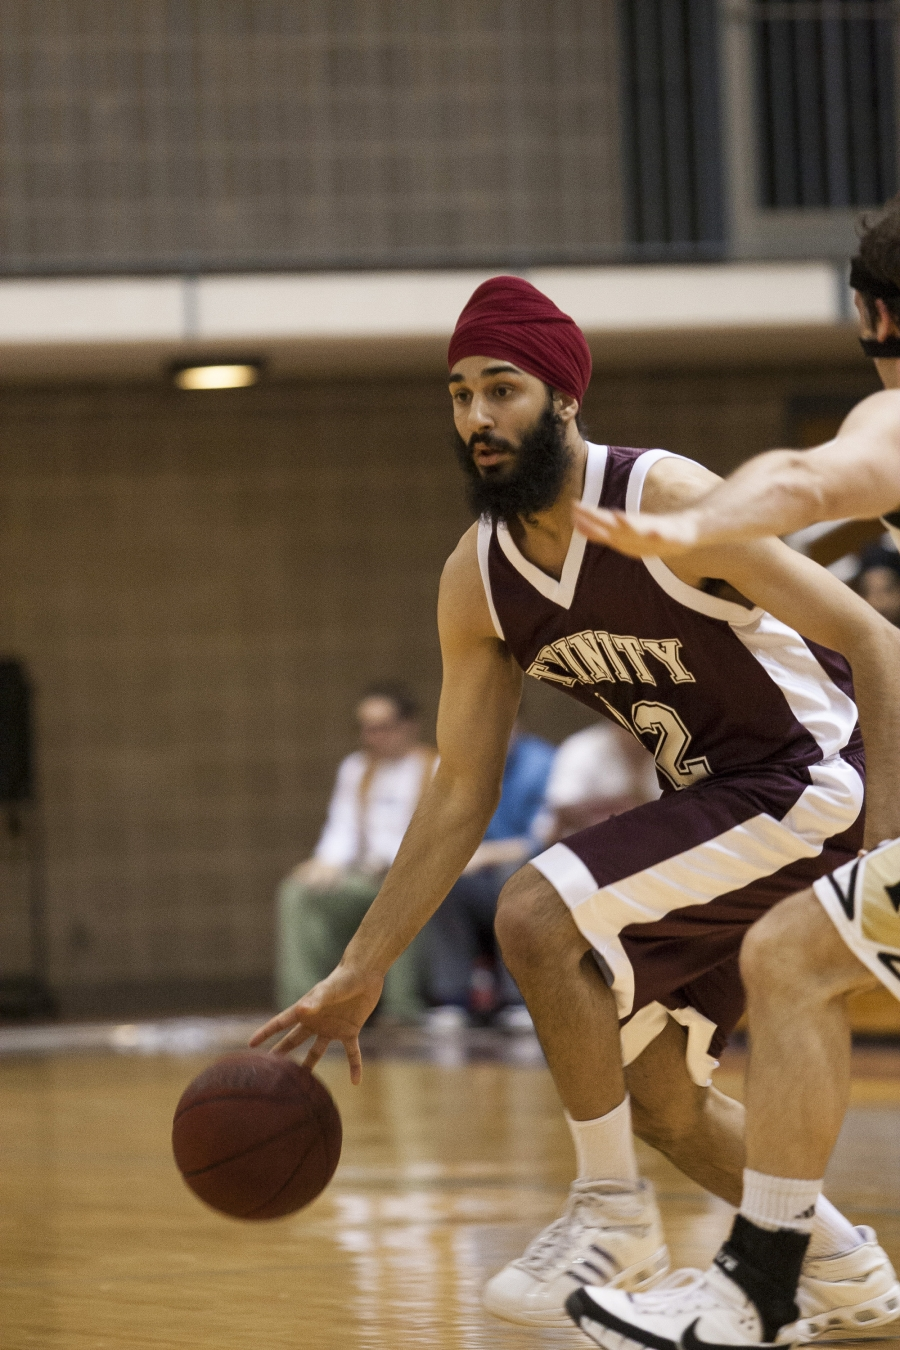 Darsh Preet Singh played for Trinity University in San Antonio Texas. He went on to become the team's co-captain.